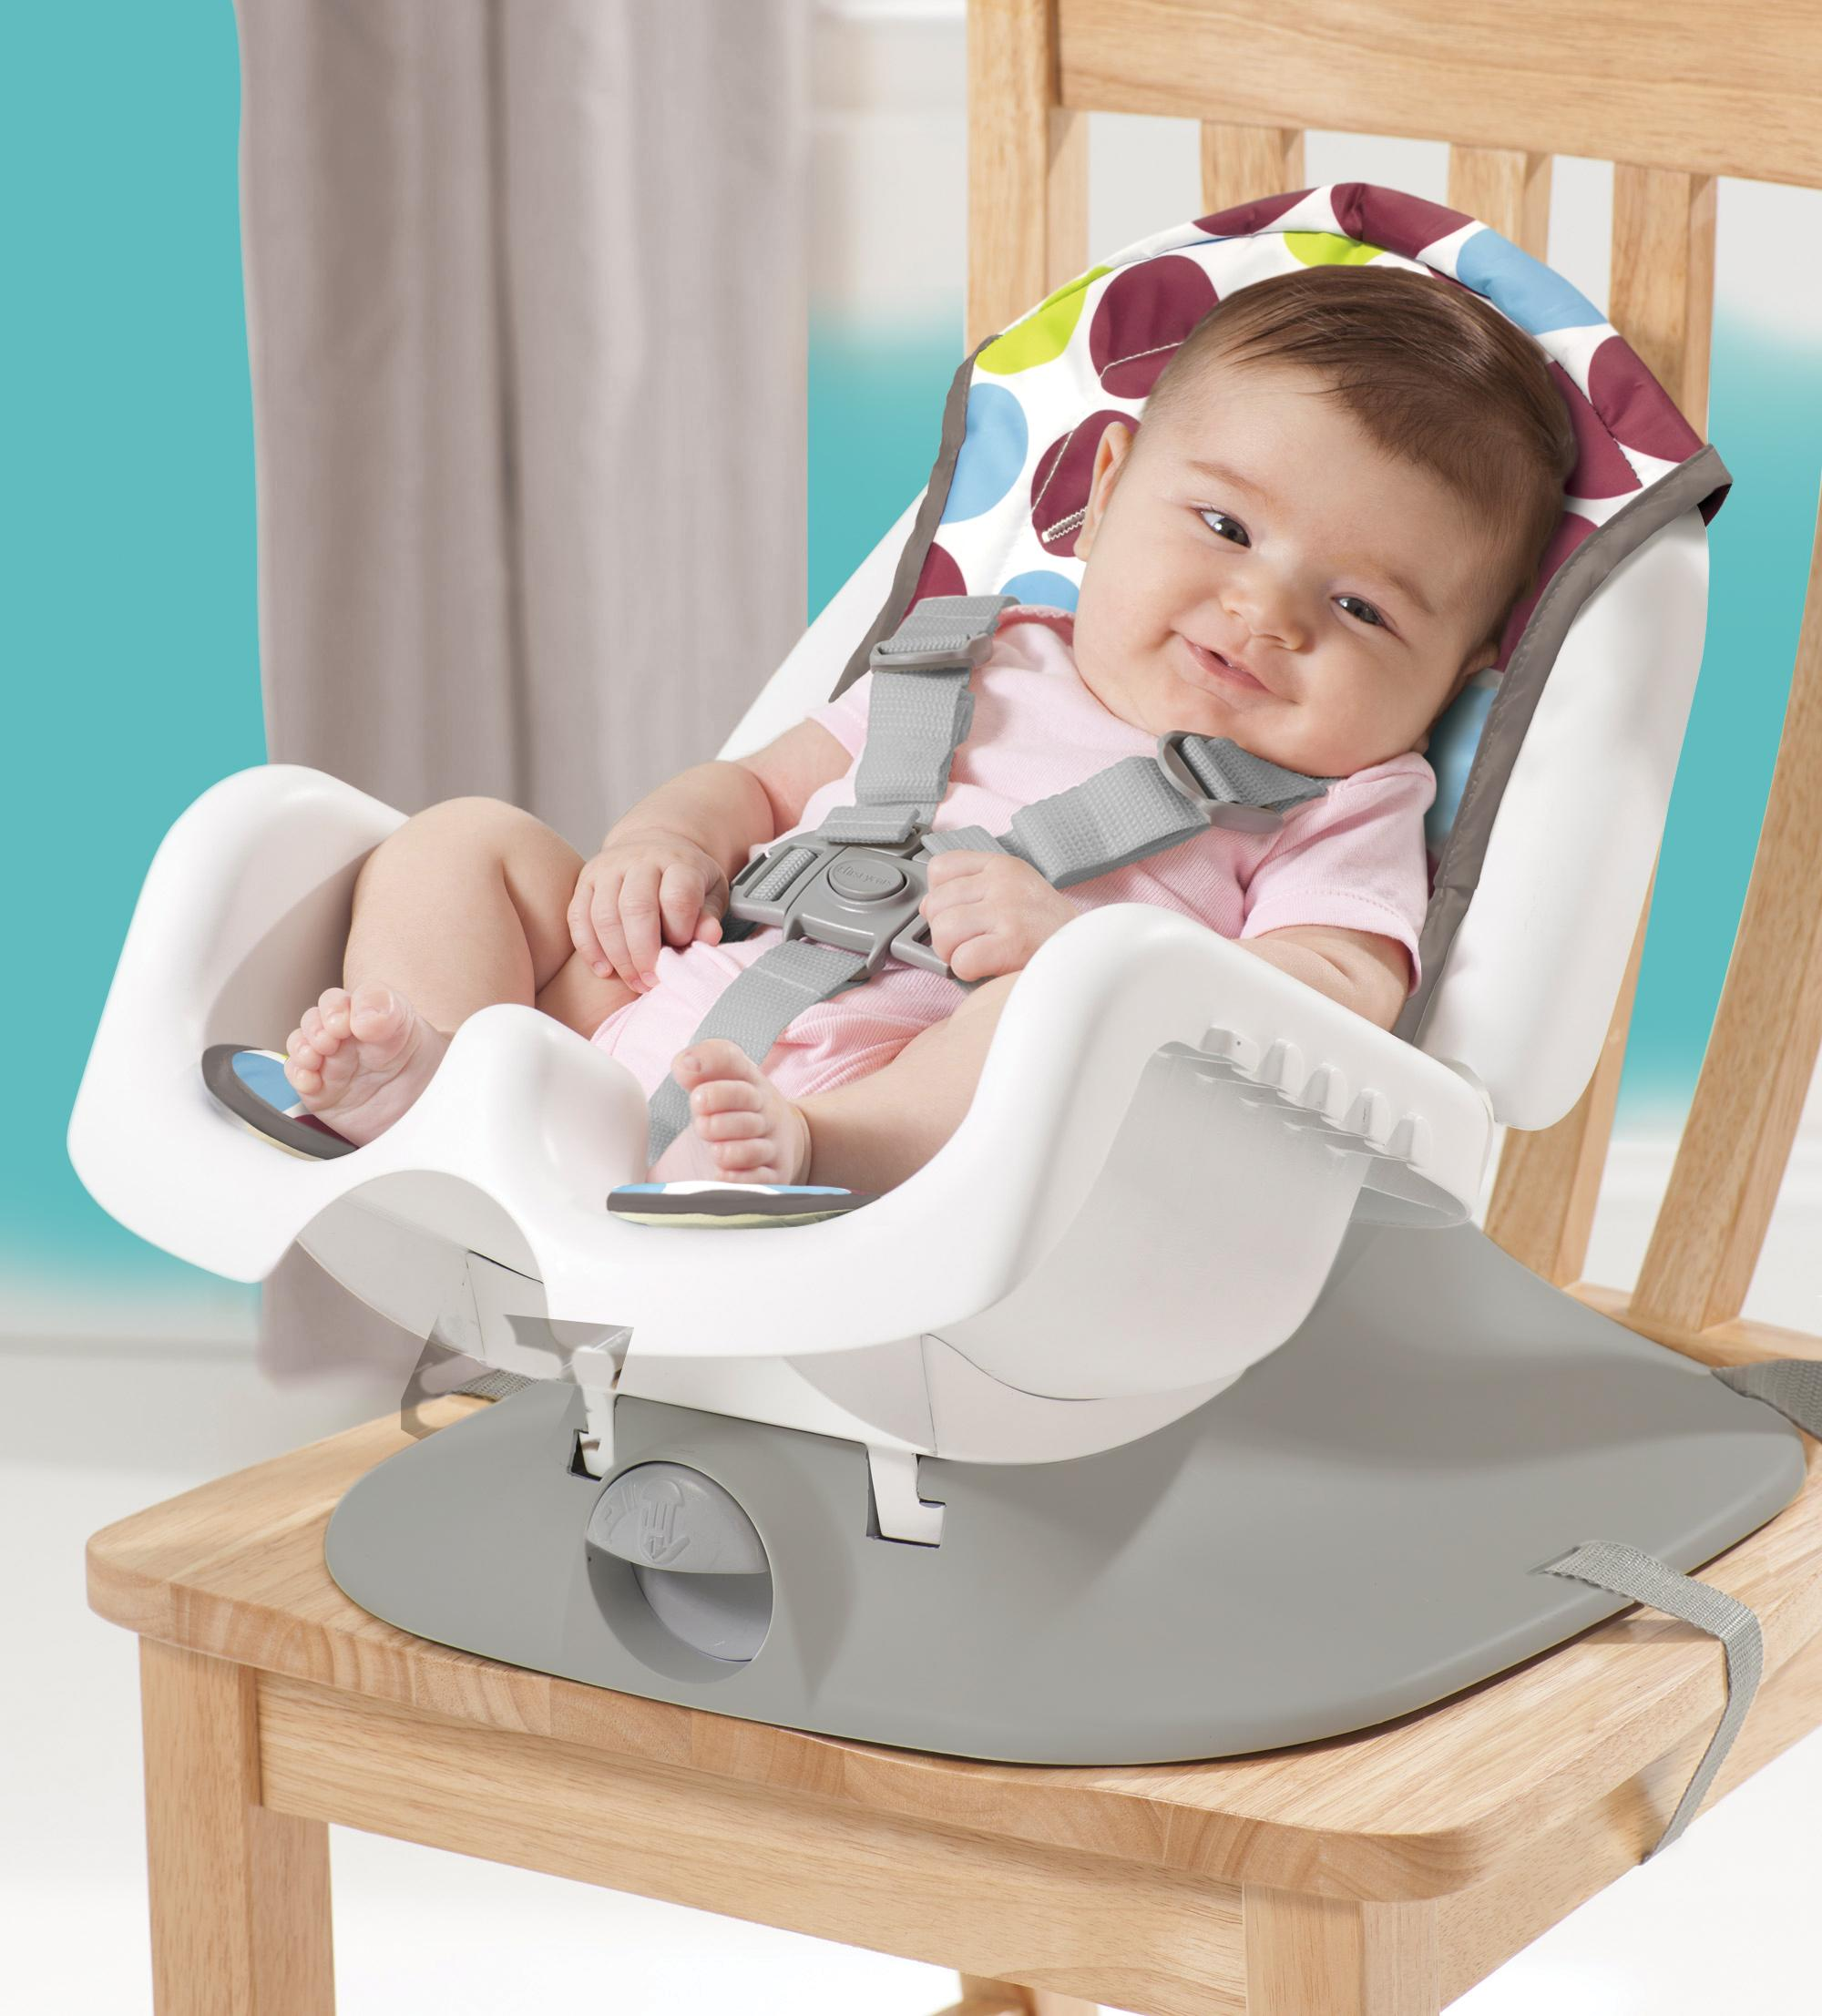 The First Years Deluxe Reclining Feeding Seat Amazon Ca Baby